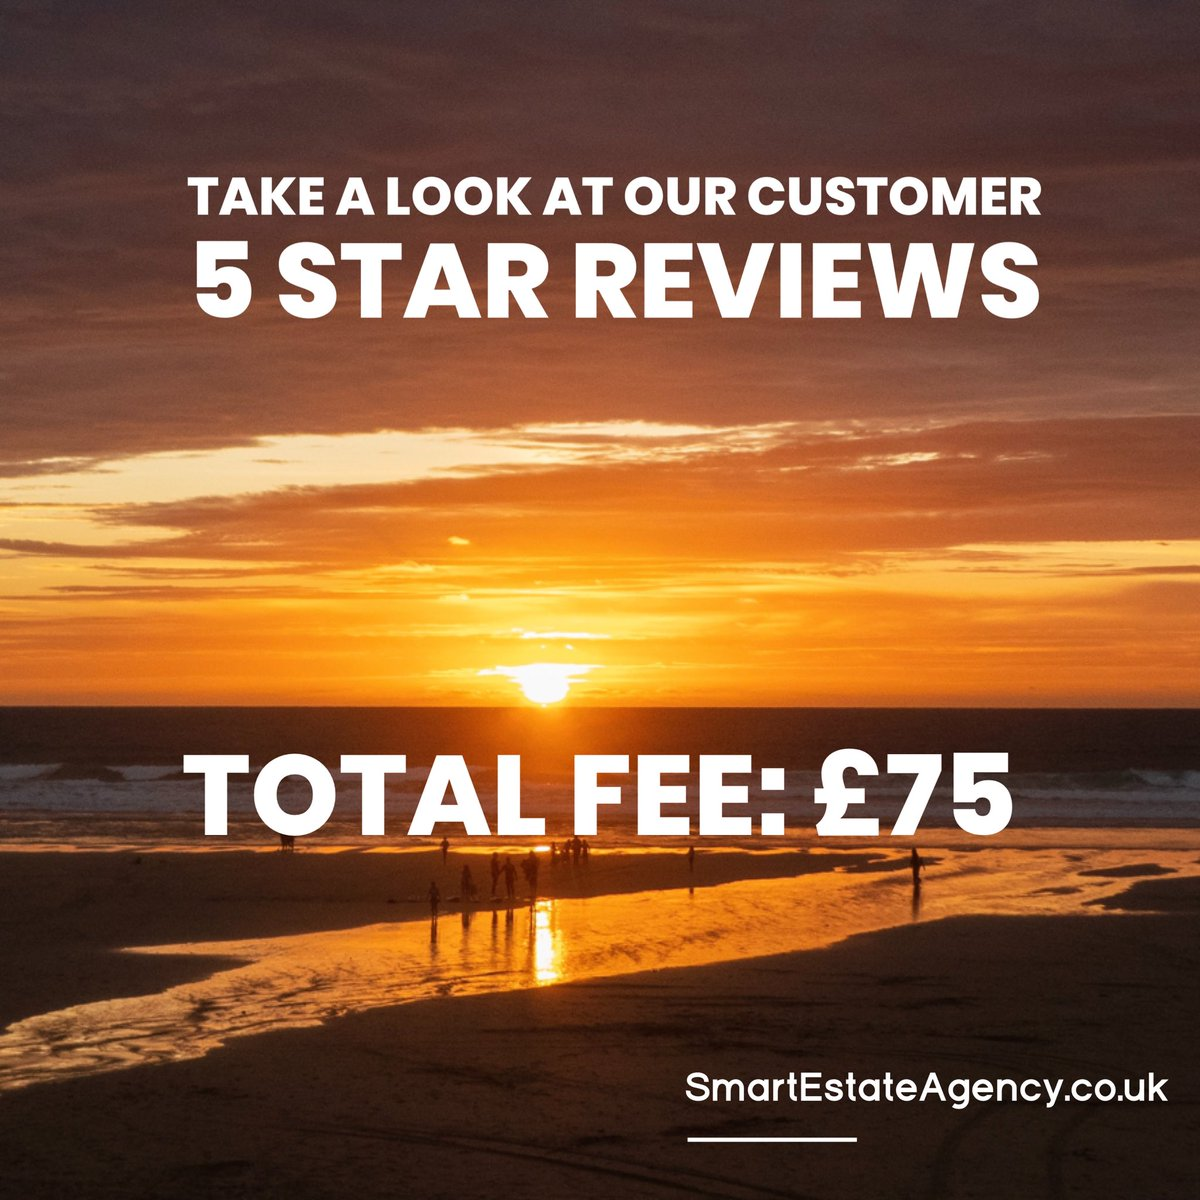 We are proud that our team are receiving 5* reviews from customers.  Our customers love our efficiency and the communication they receive but most importantly they love that our total bill is £75.  Let's get your home advertised on Rightmove for just £75   #Happycustomers #proud